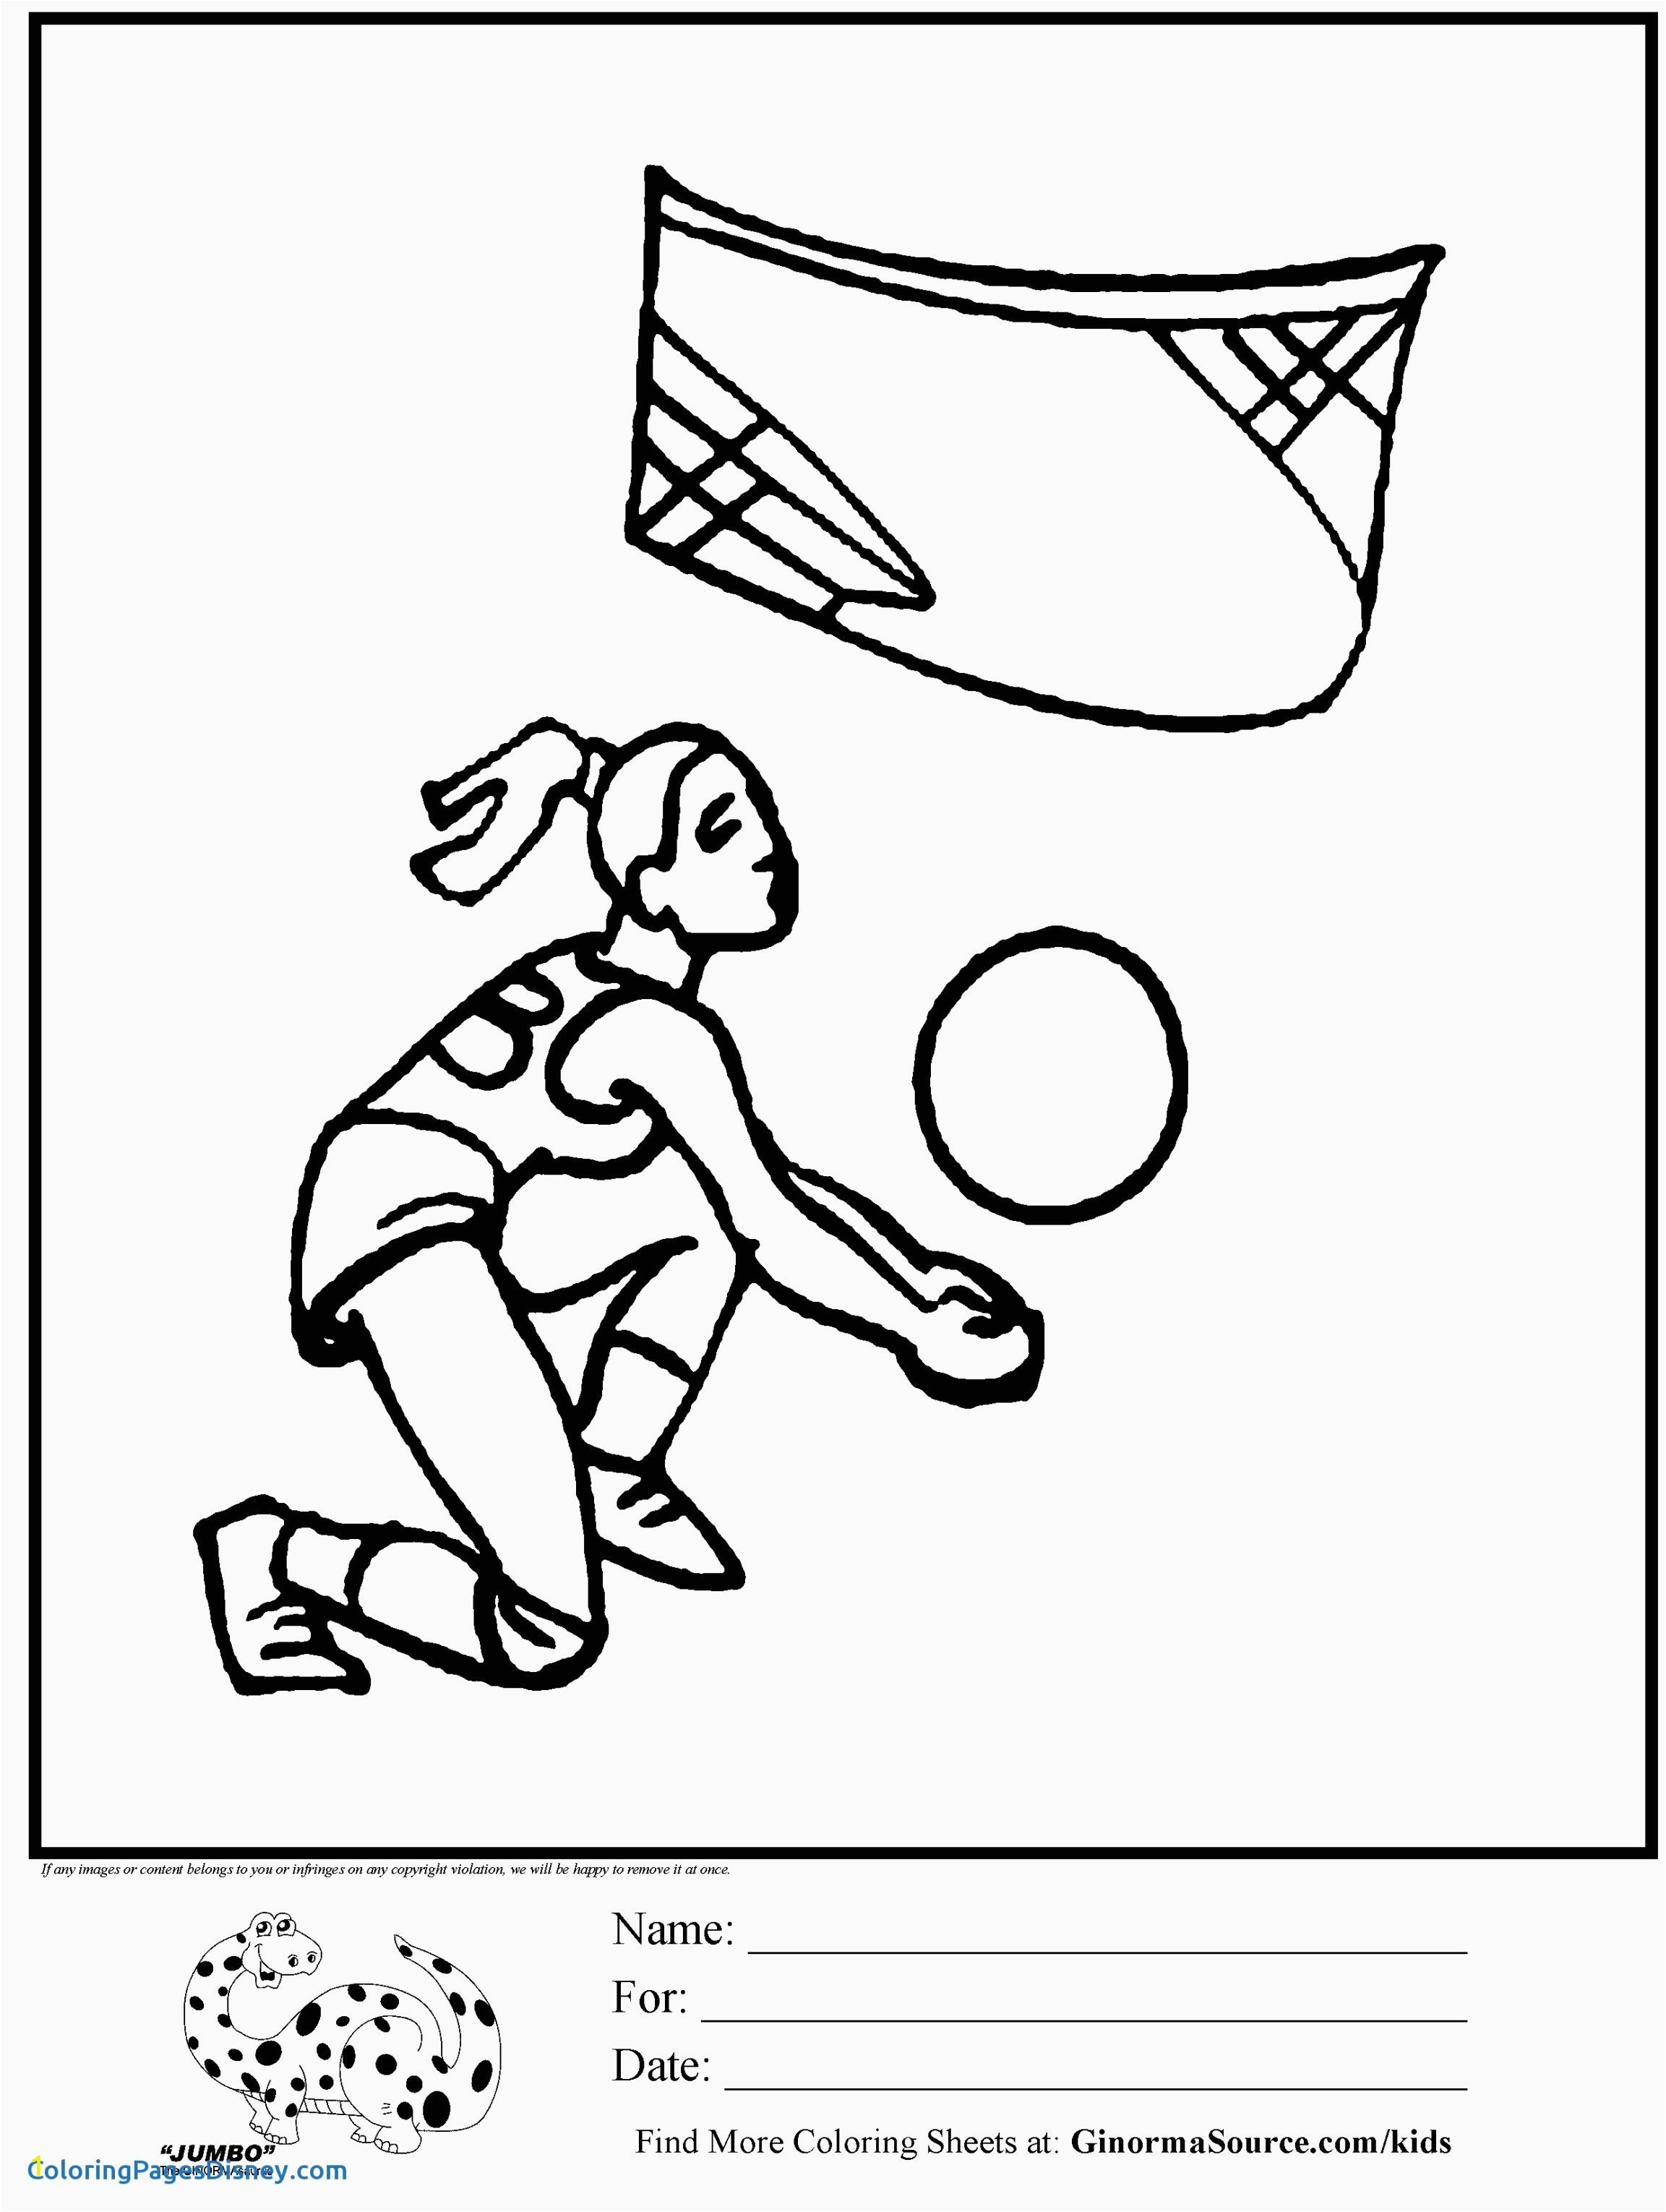 Leotard Coloring Pages Preschool Printable Valentine Coloring Pages New Father S Day